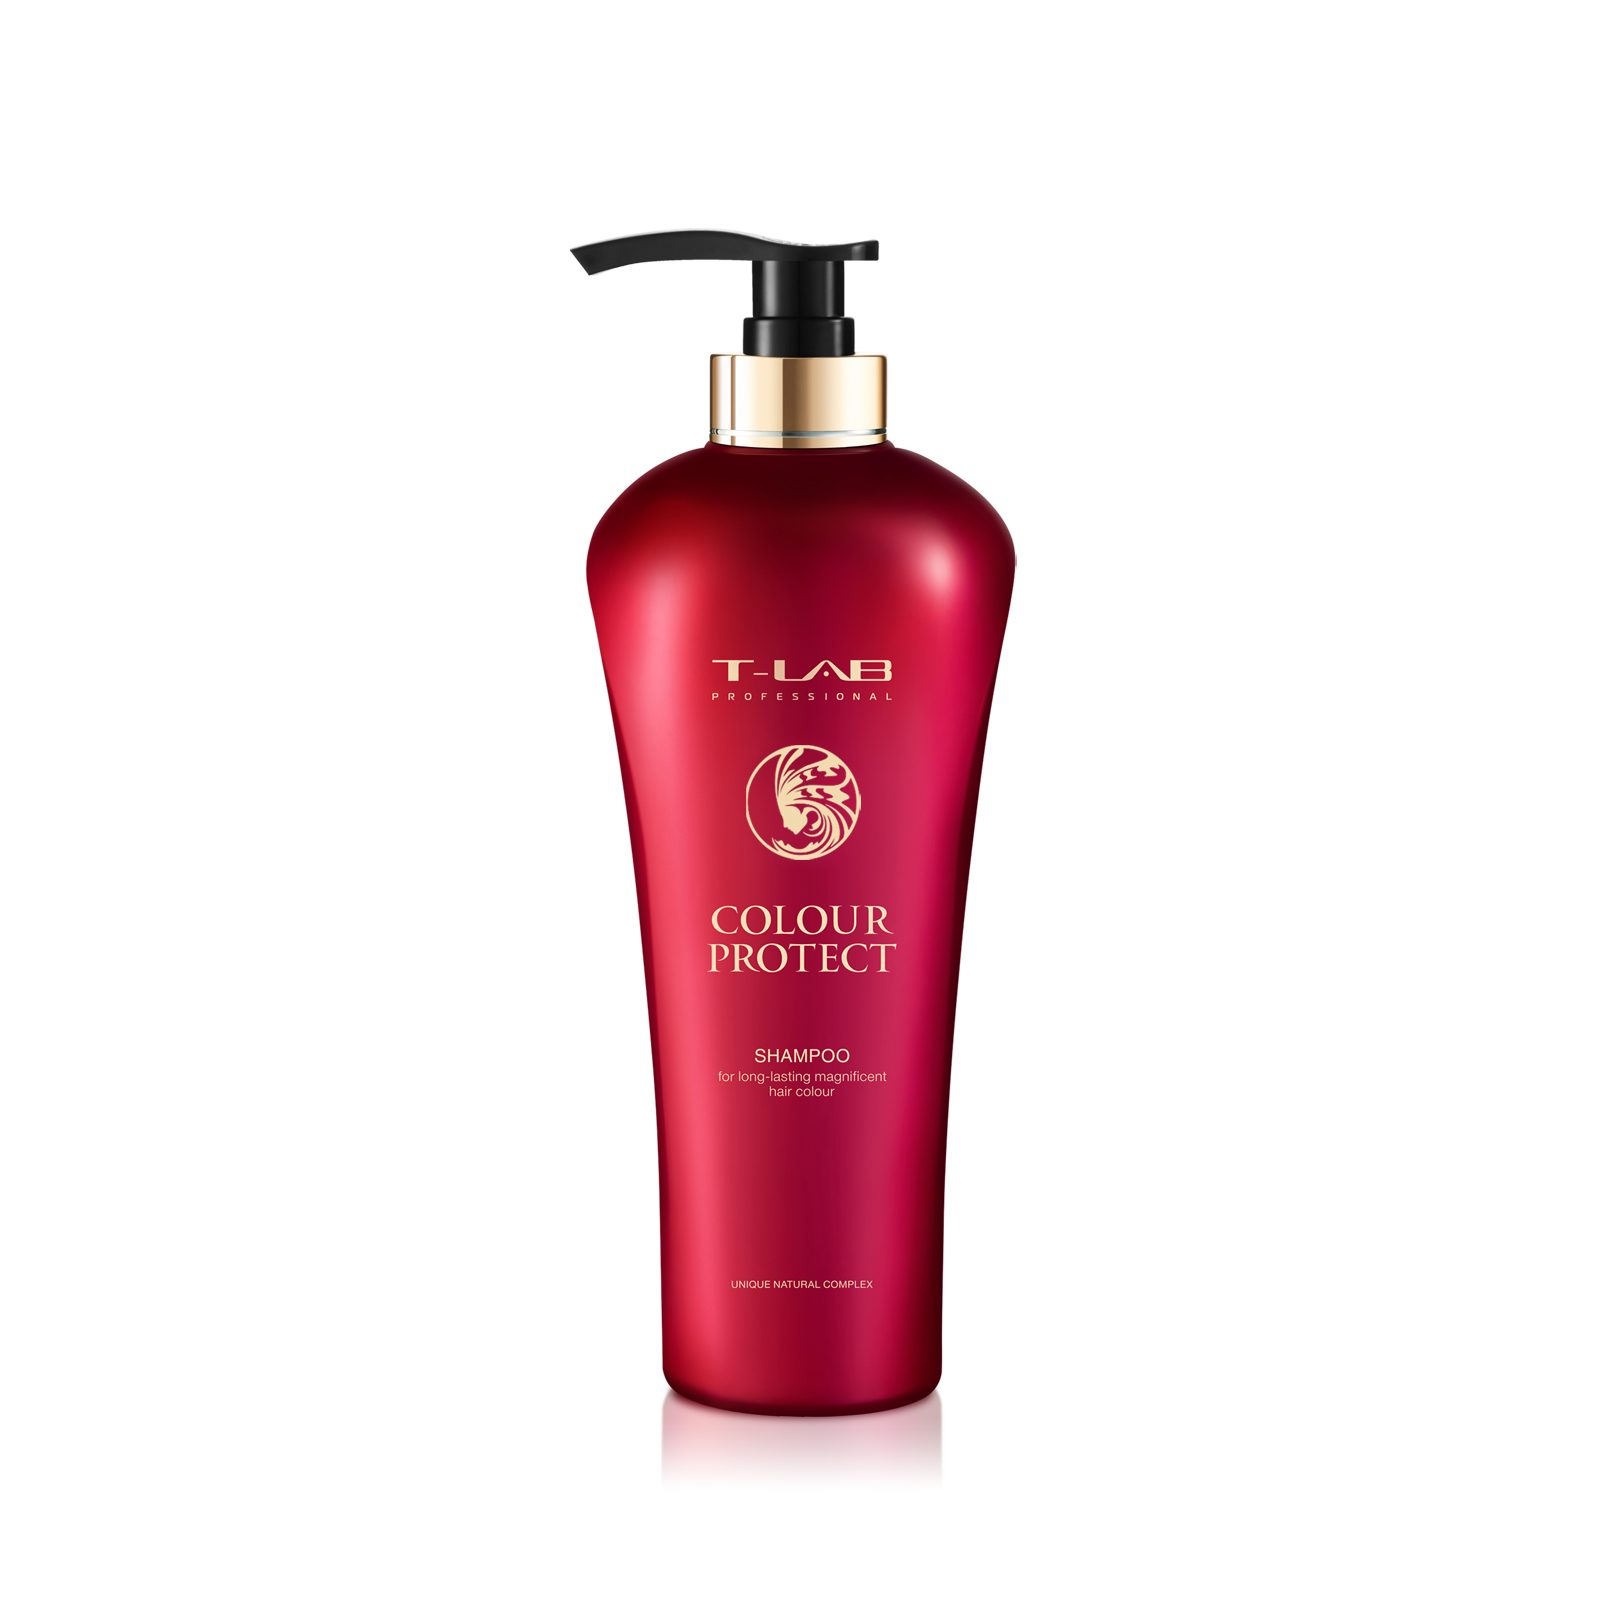 COLOUR PROTECT SHAMPOO 750 ml